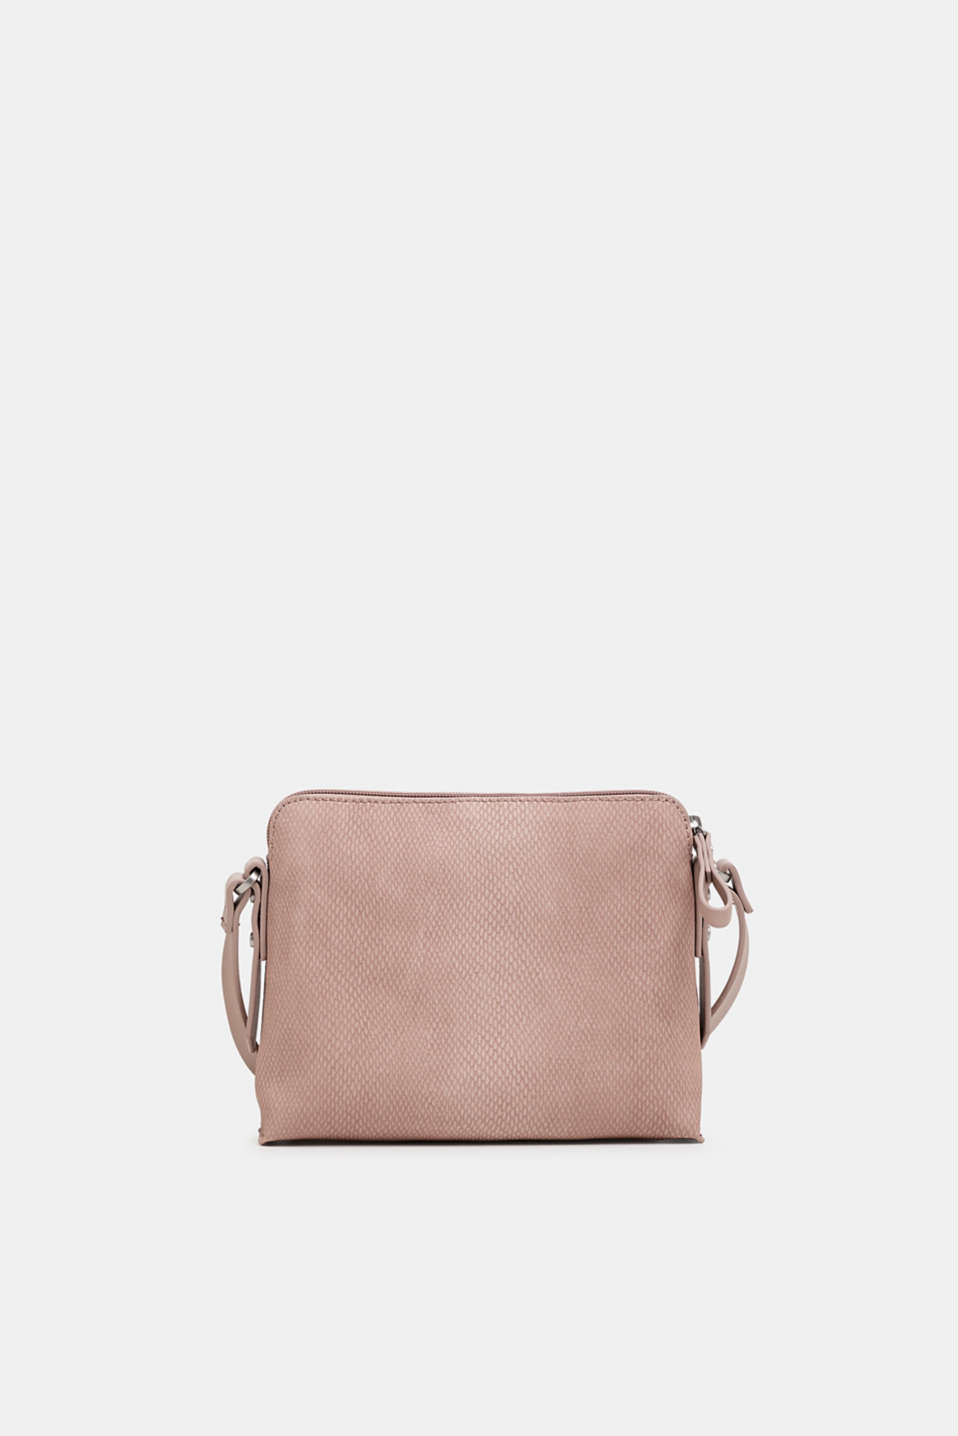 Esprit - Small shoulder bag in exotic faux leather